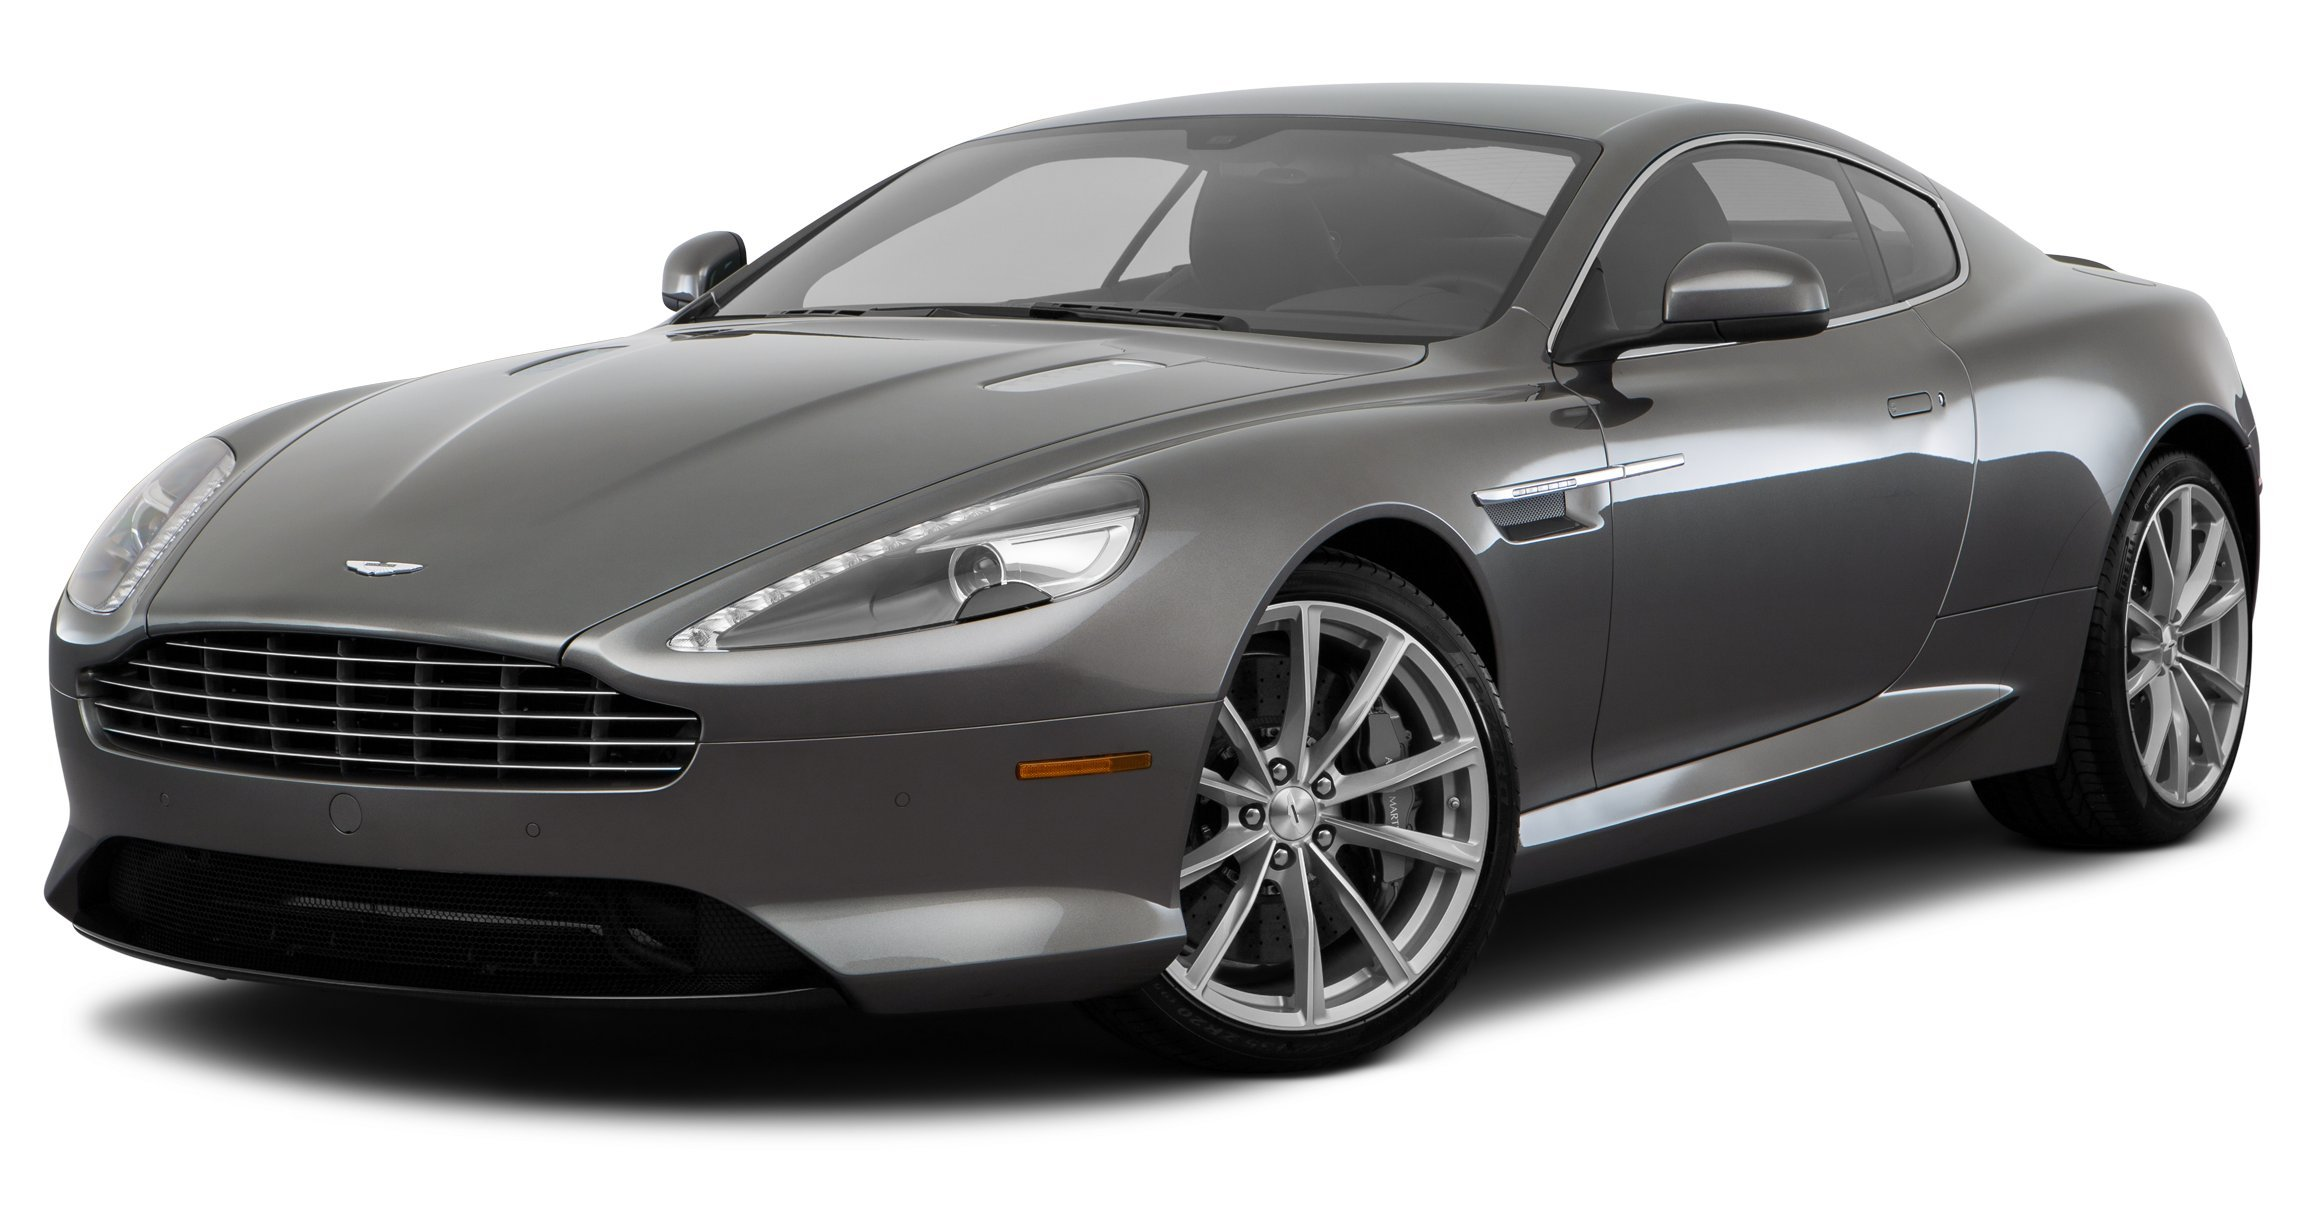 ... 2016 Aston Martin DB9 GT Bond Edition, 2 Door Coupe Automatic  Transmission. 2016 Mercedes Benz ...